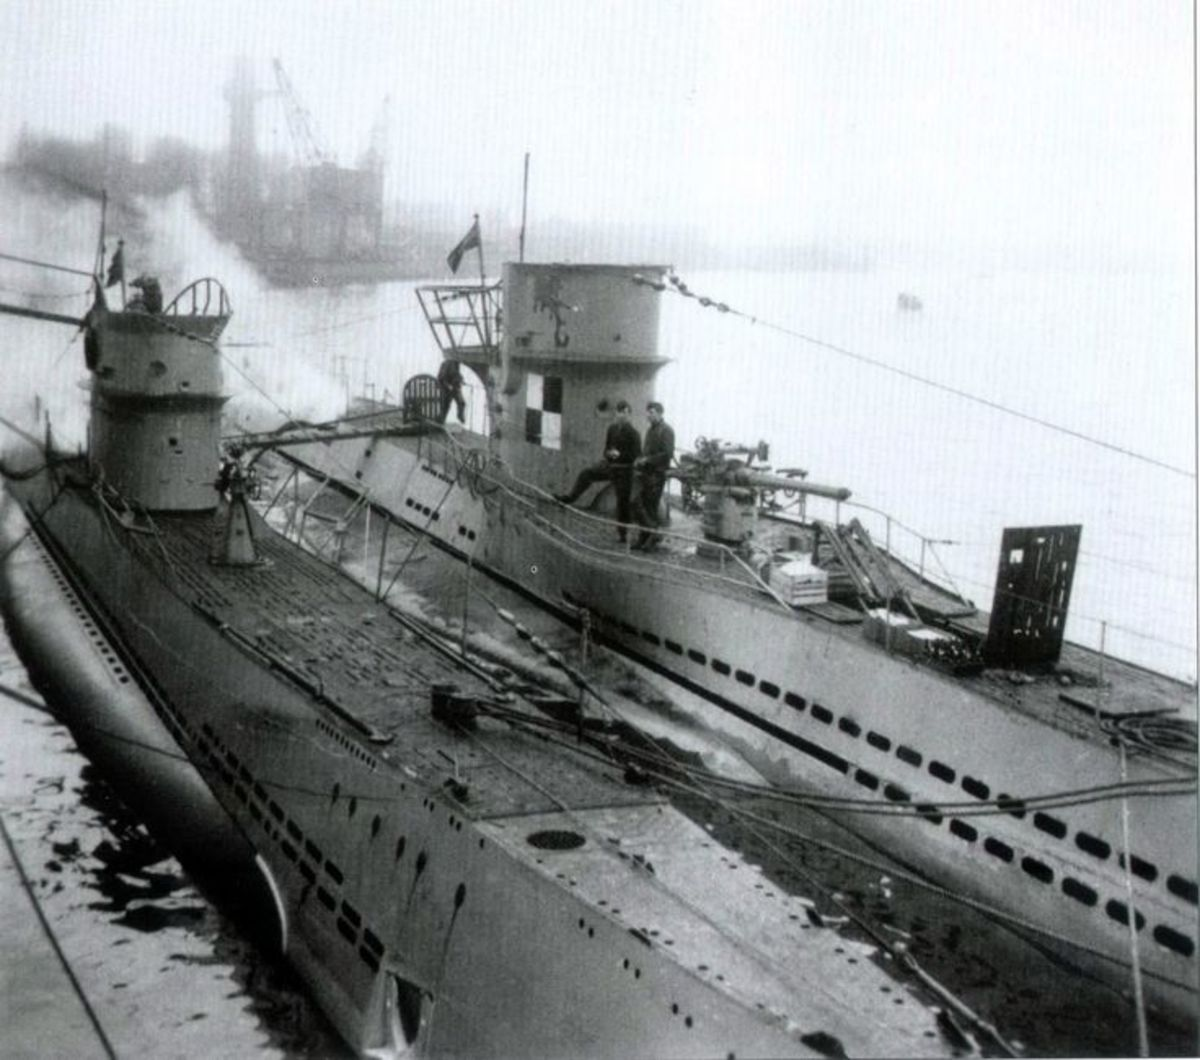 German training sub